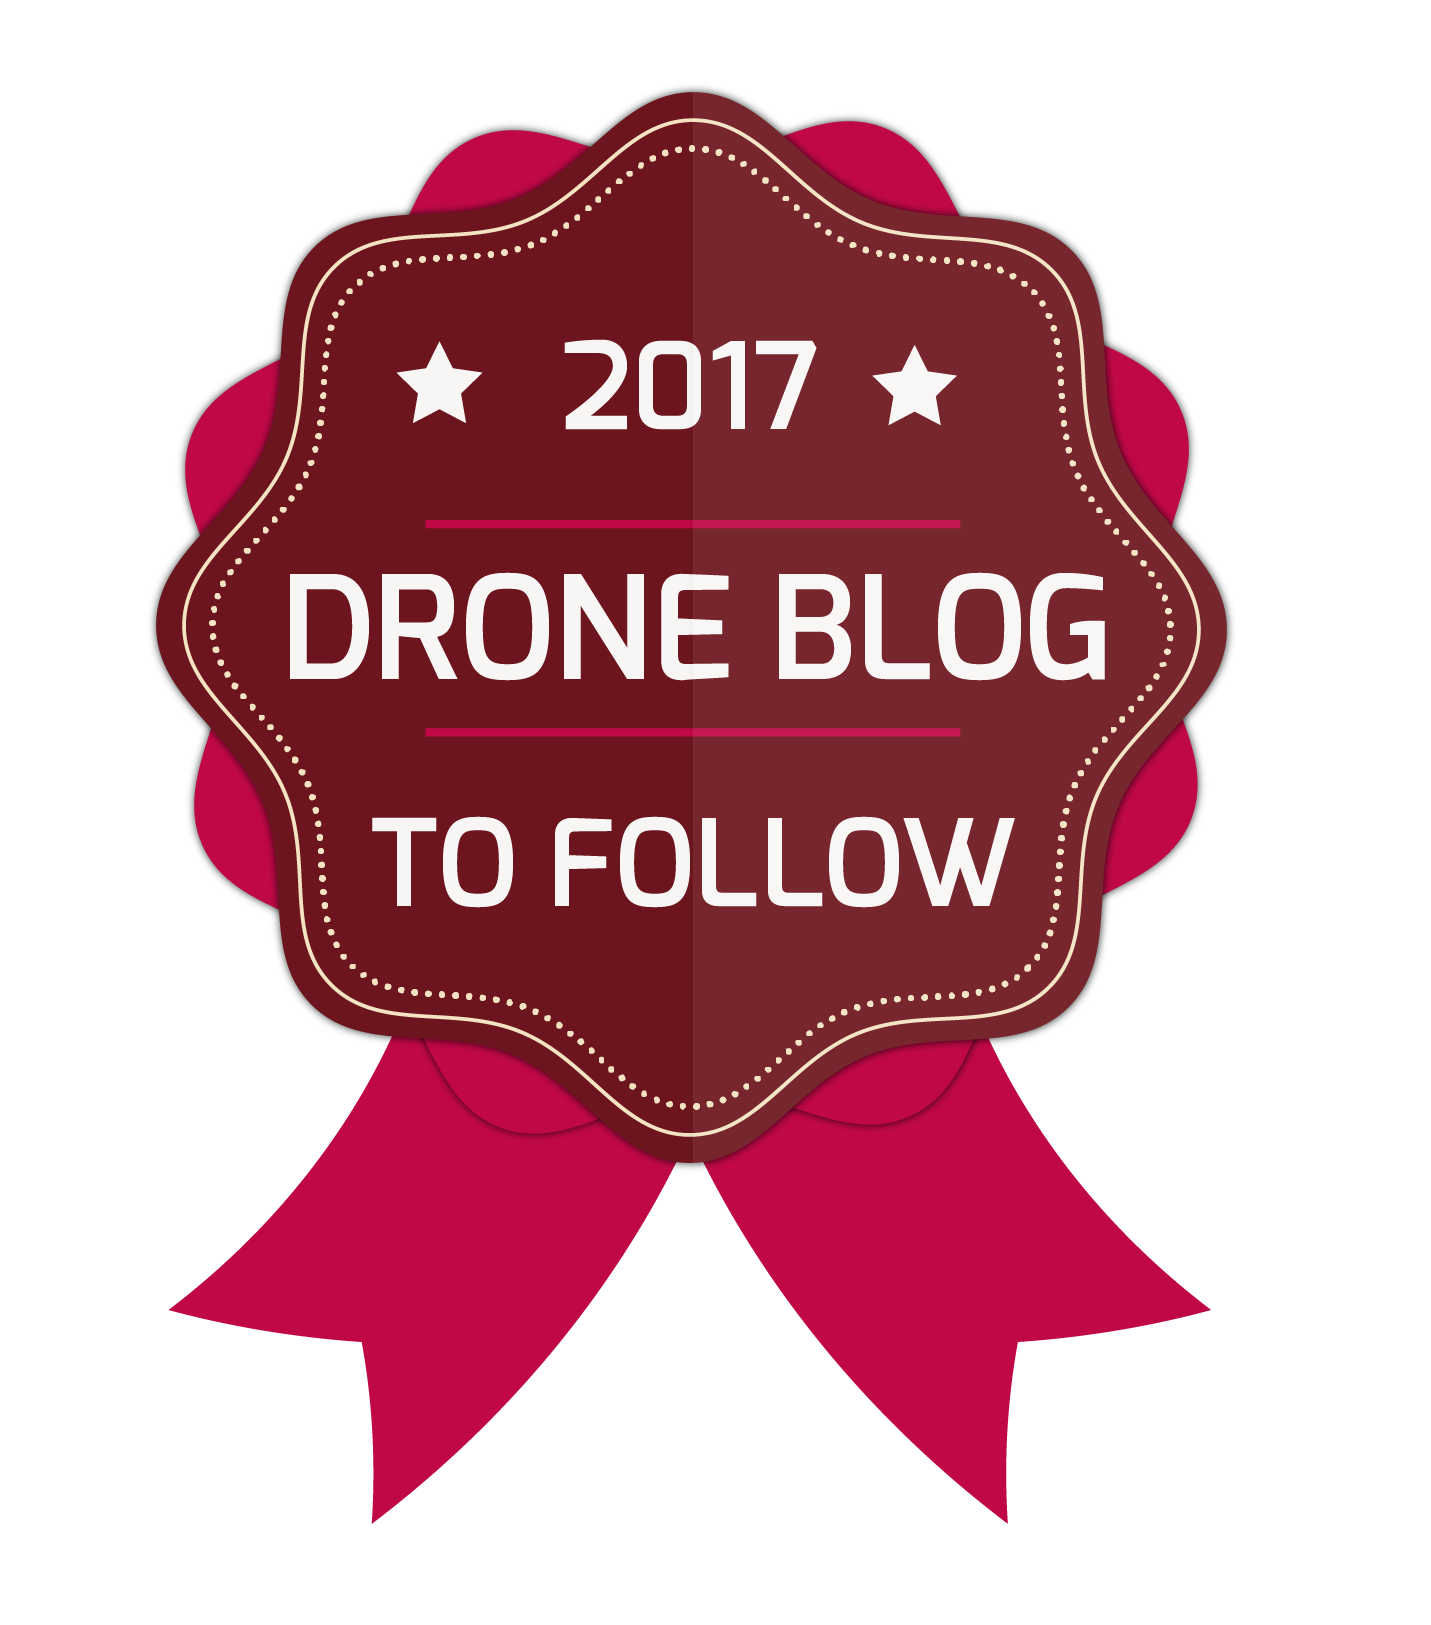 2017 Drone Blog to Follow Award Badge